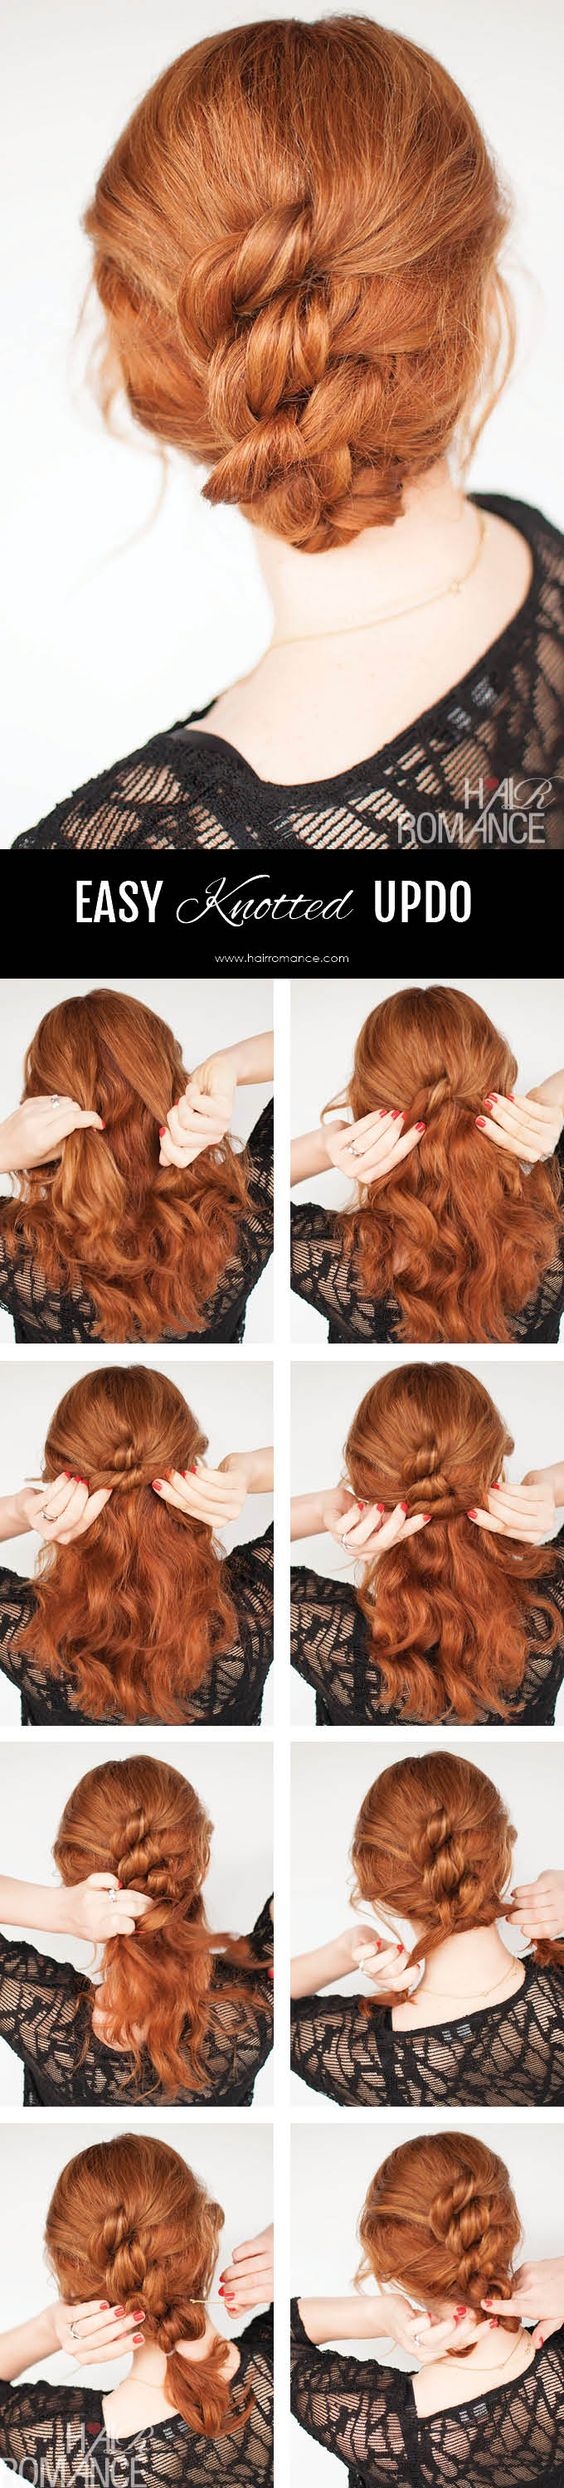 Hair Romance - Easy knotted hairstyle - click through for full tutorial: